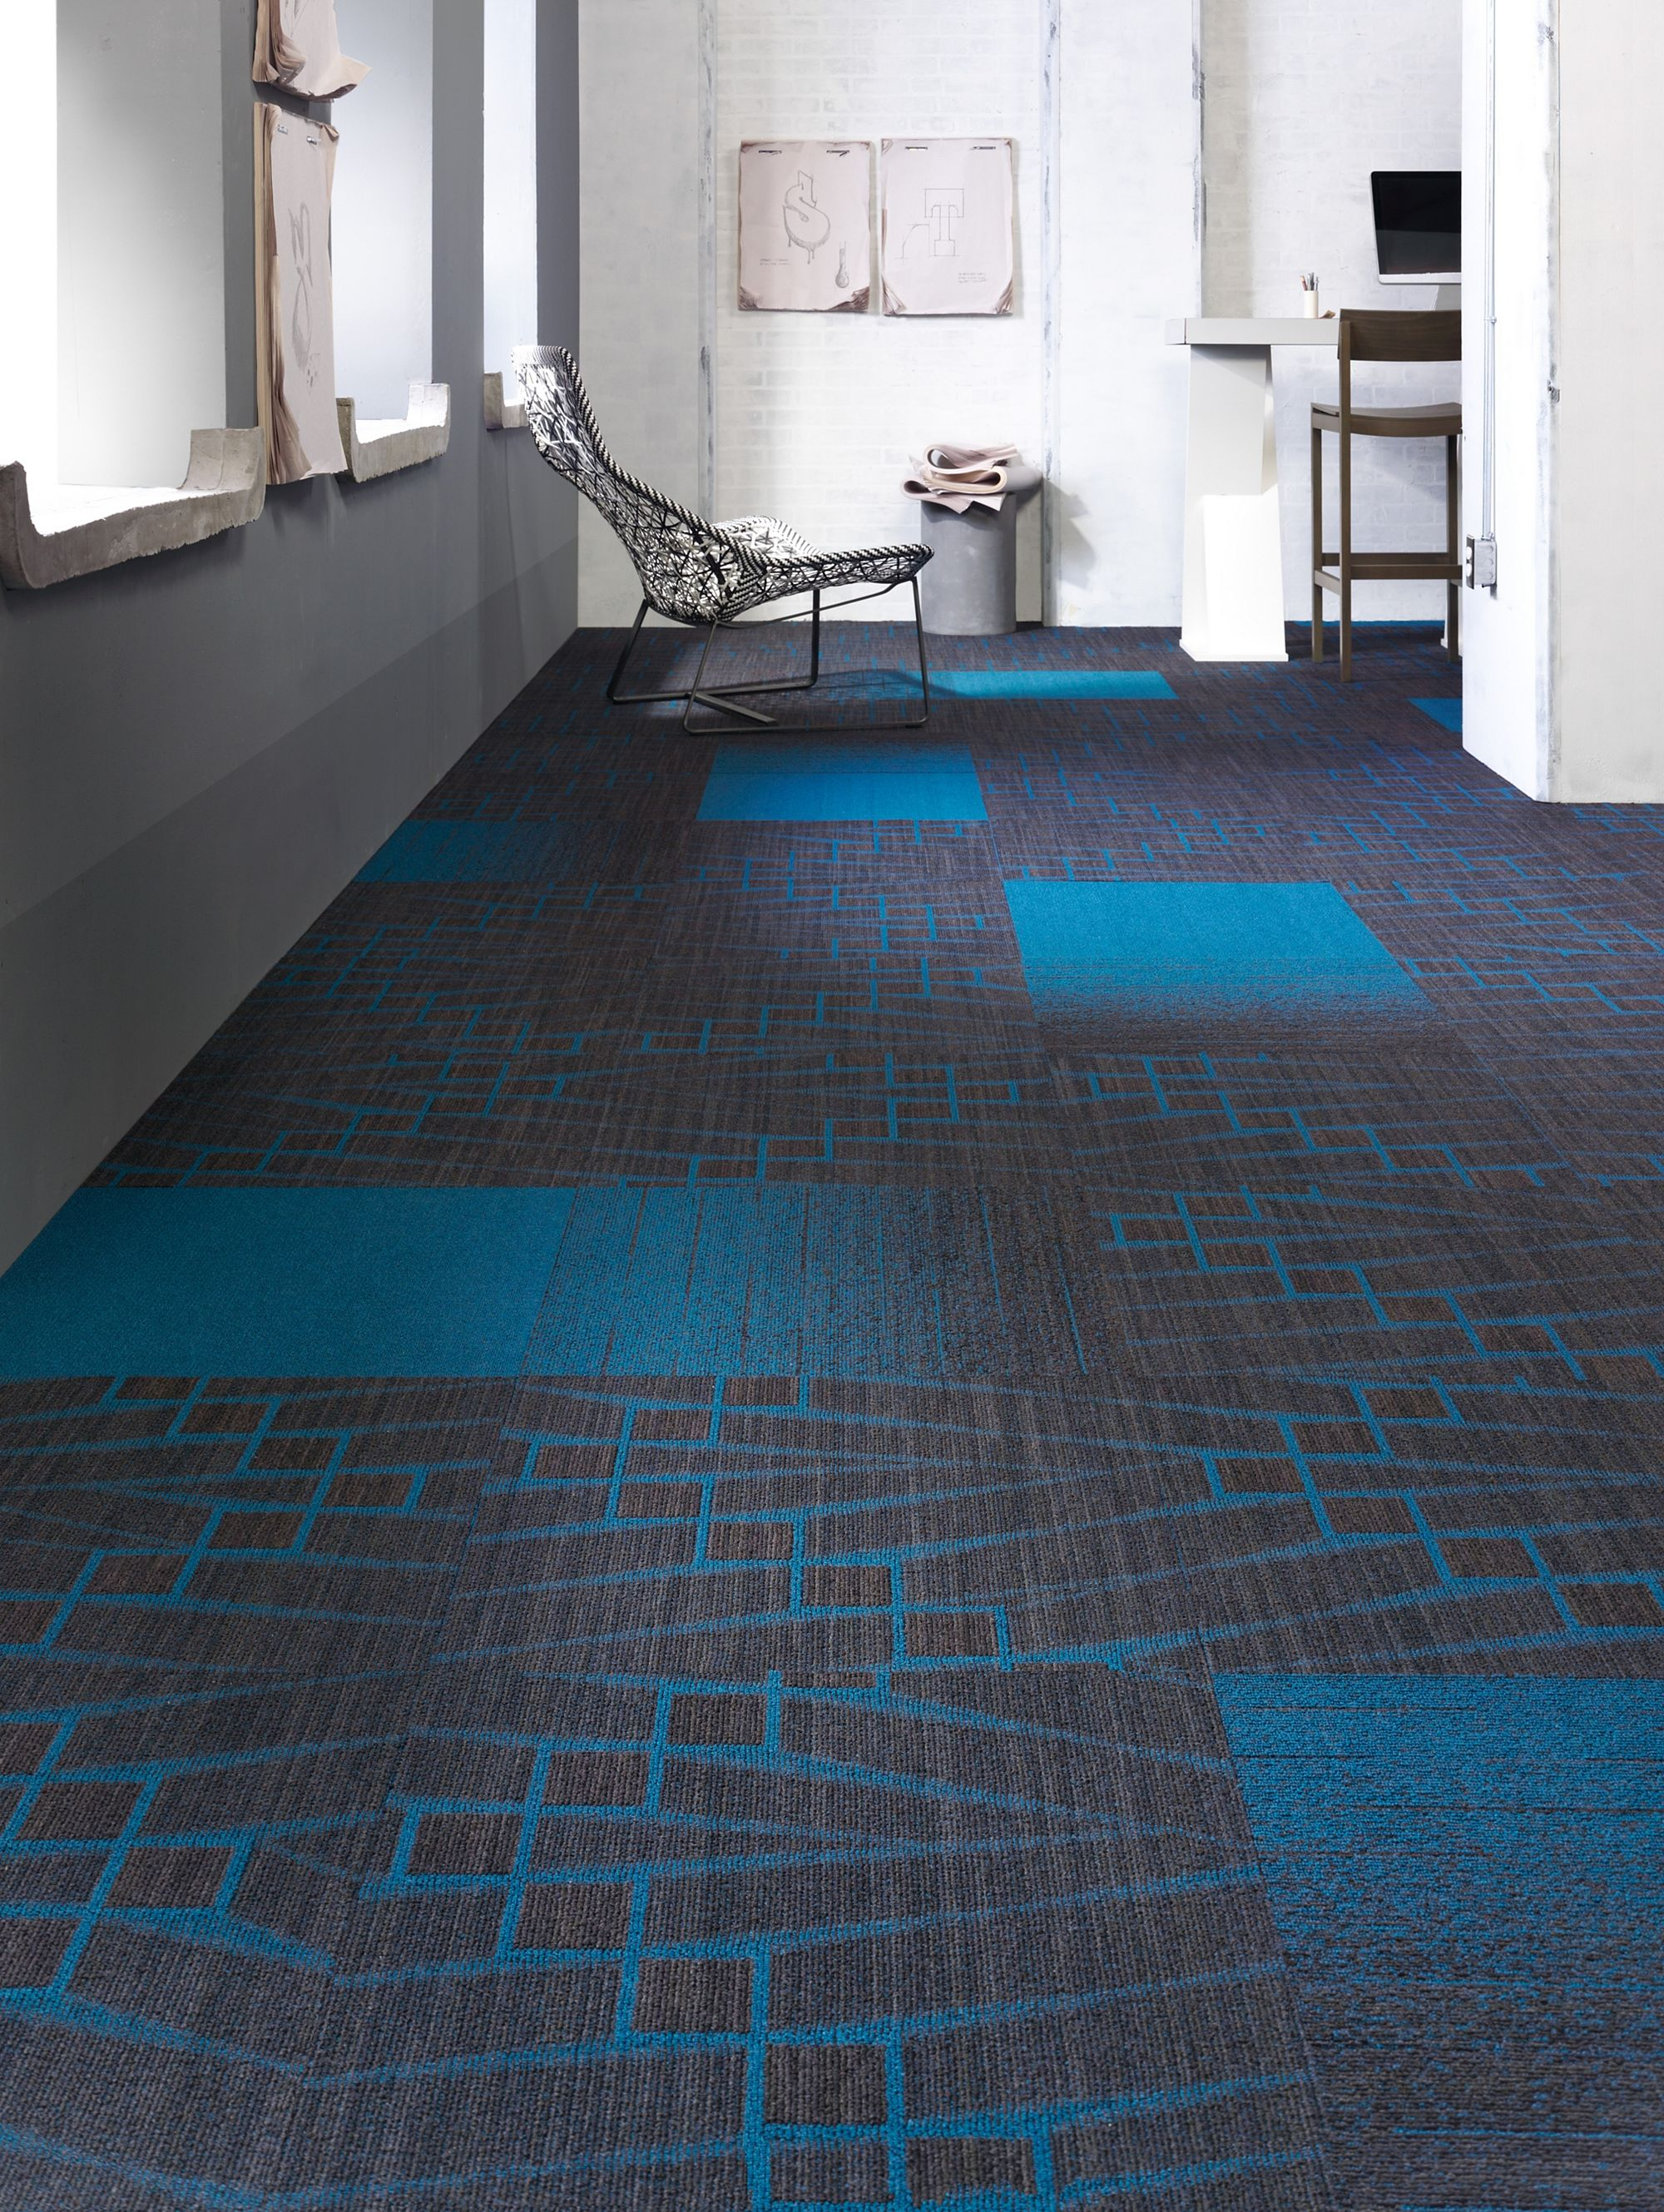 Carpet Tile - Off The Wall Tile - Cool | Mohawk Group